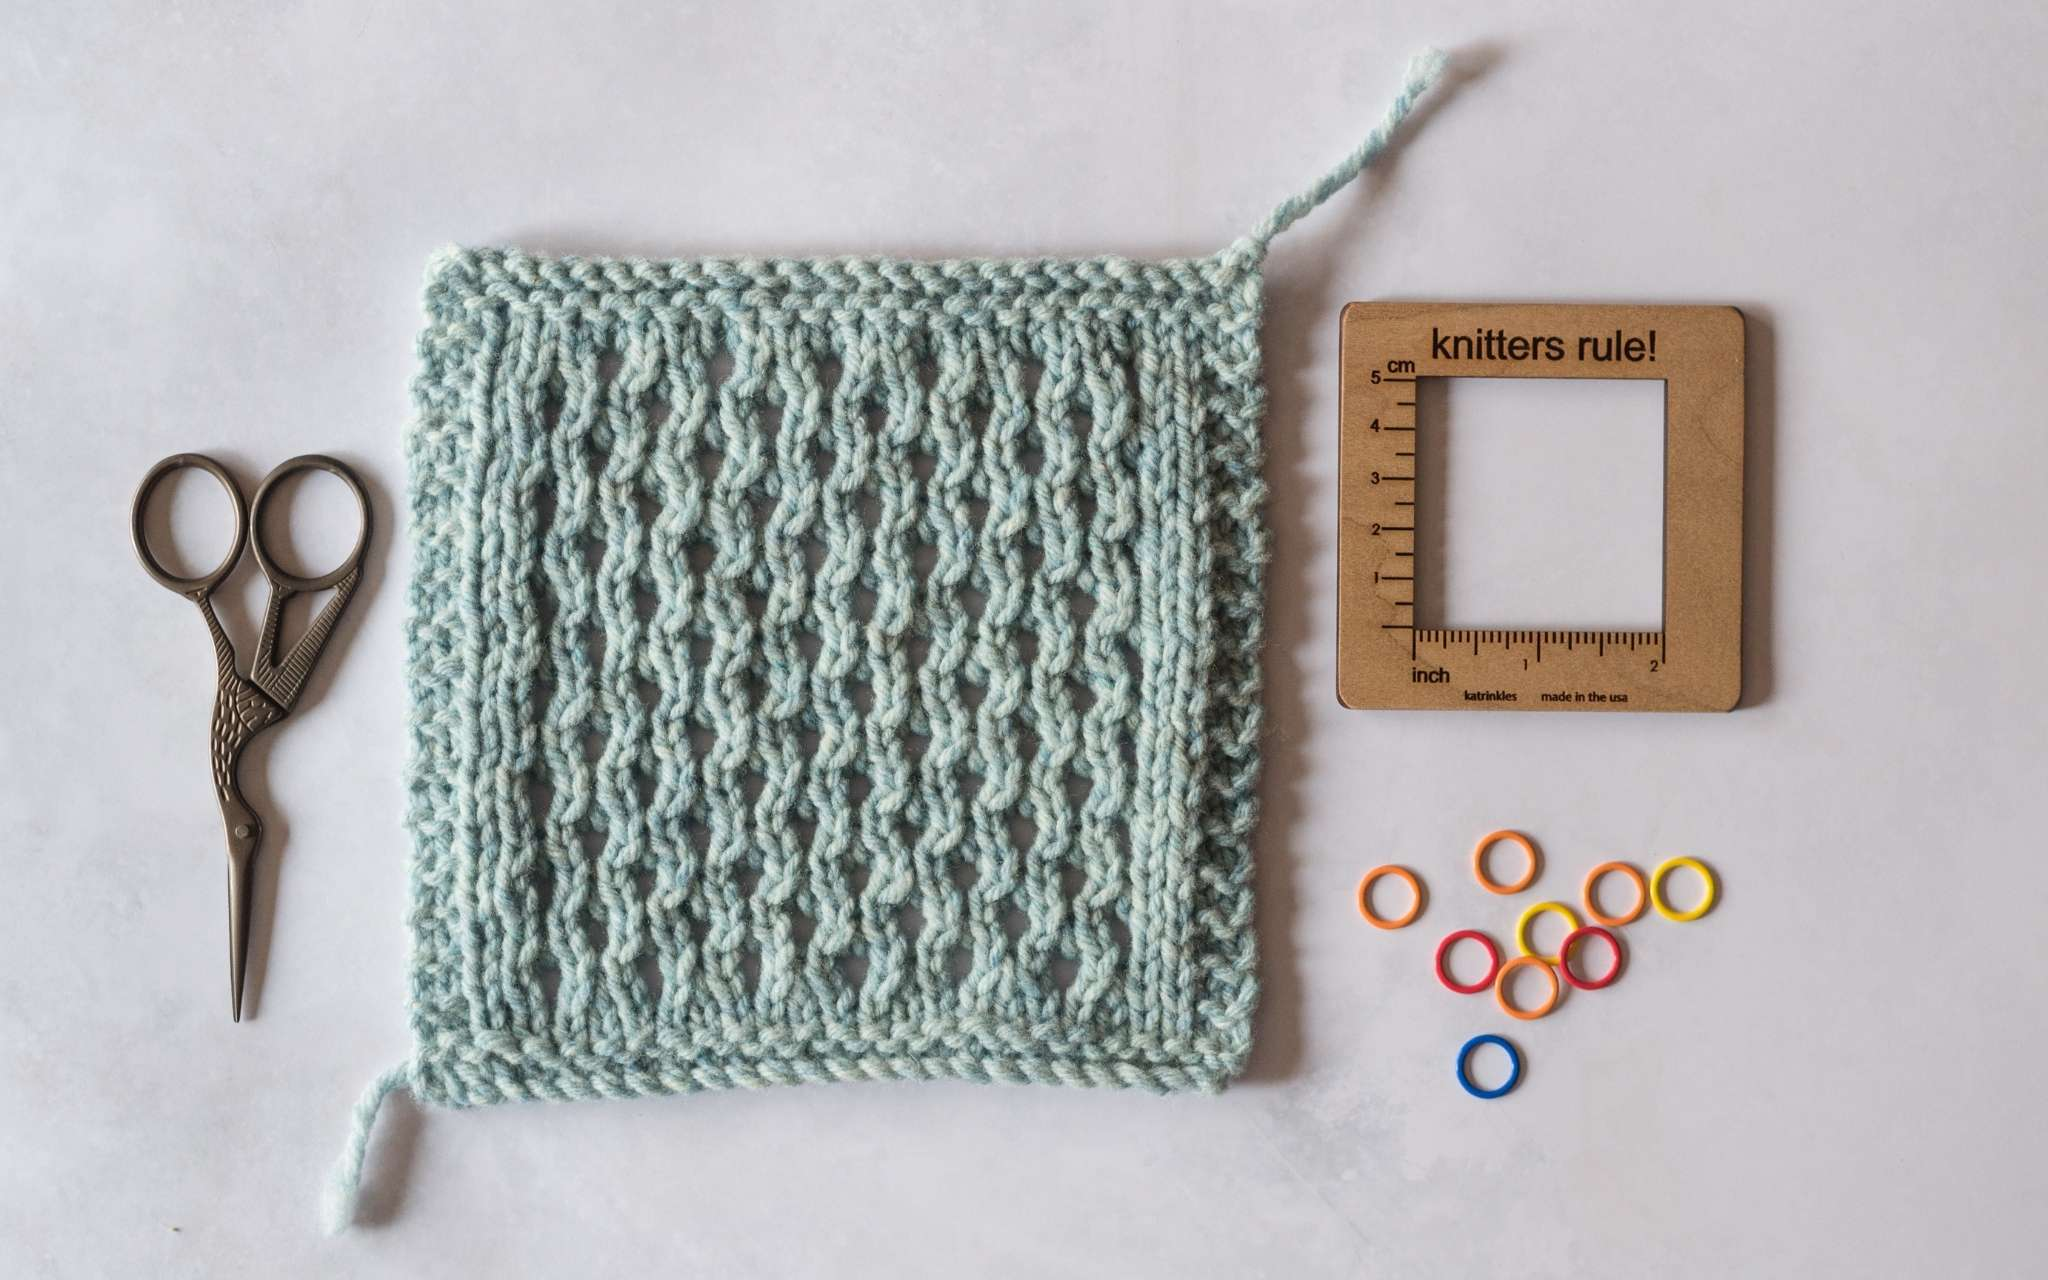 A pale blue cabled swatch lies on a flat surface. A small pair of scissors lie next to it on the left, and to the right is a square wooden swatch measuring tool and brightly coloured stitch markers.